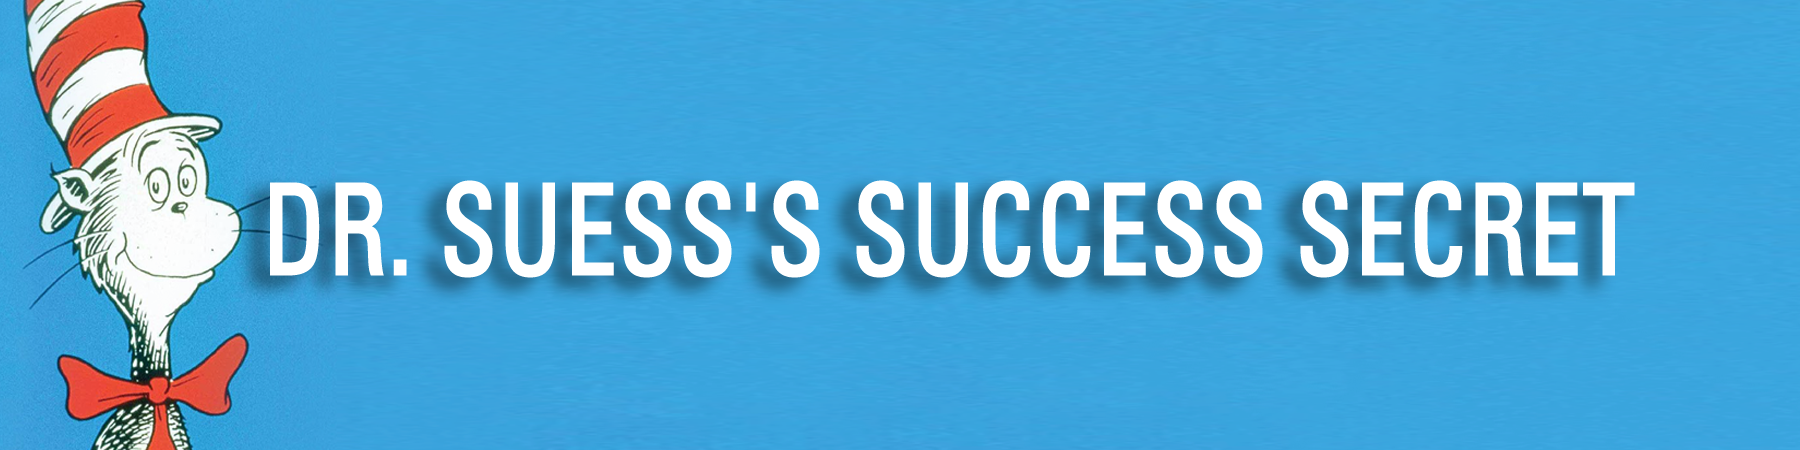 Dr. Suess's Success Secret